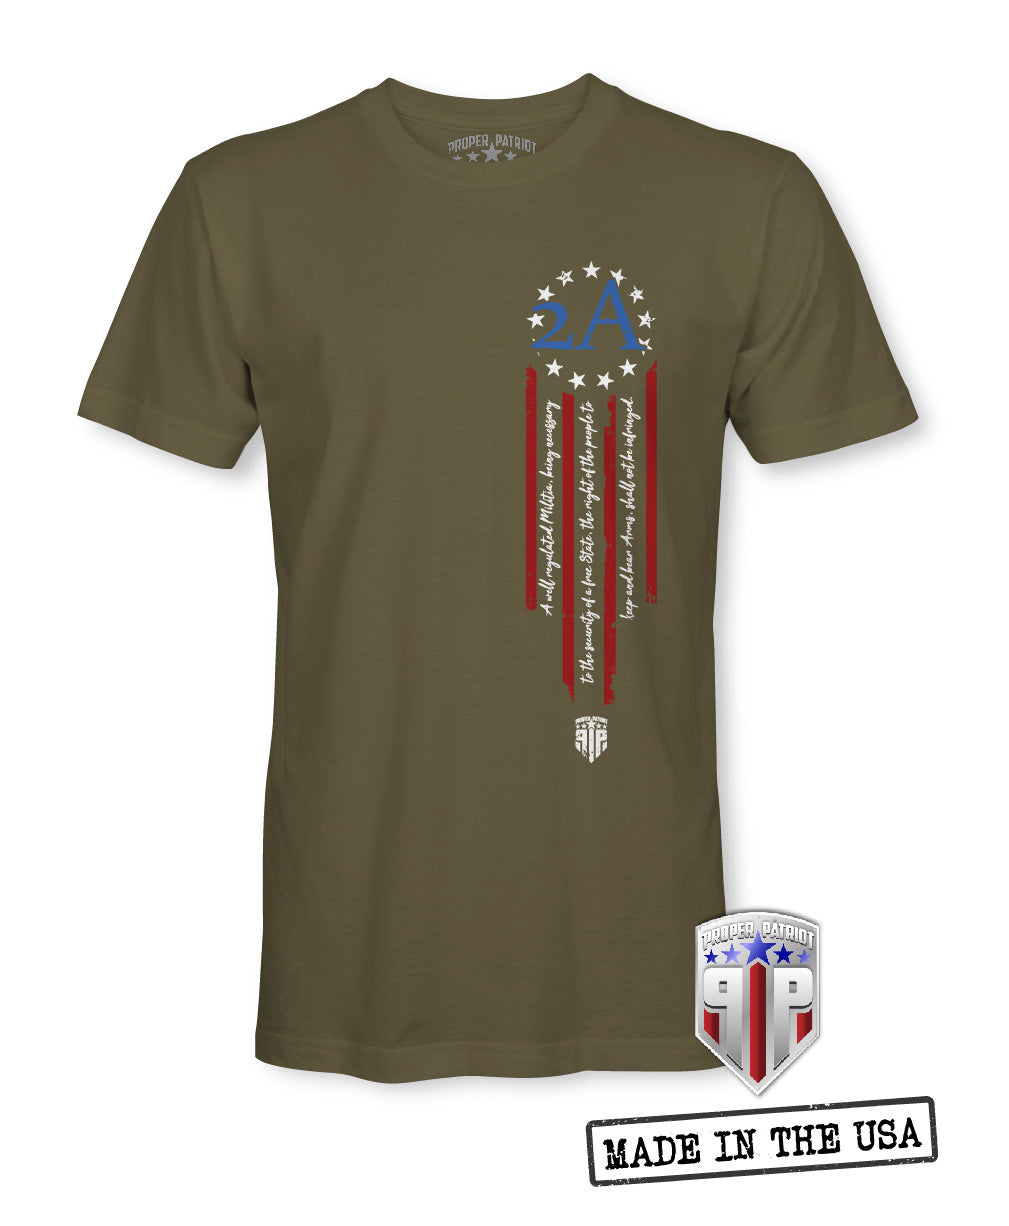 Shall Not Be Infringed - 2A Shirts - Patriotic Shirts for Men